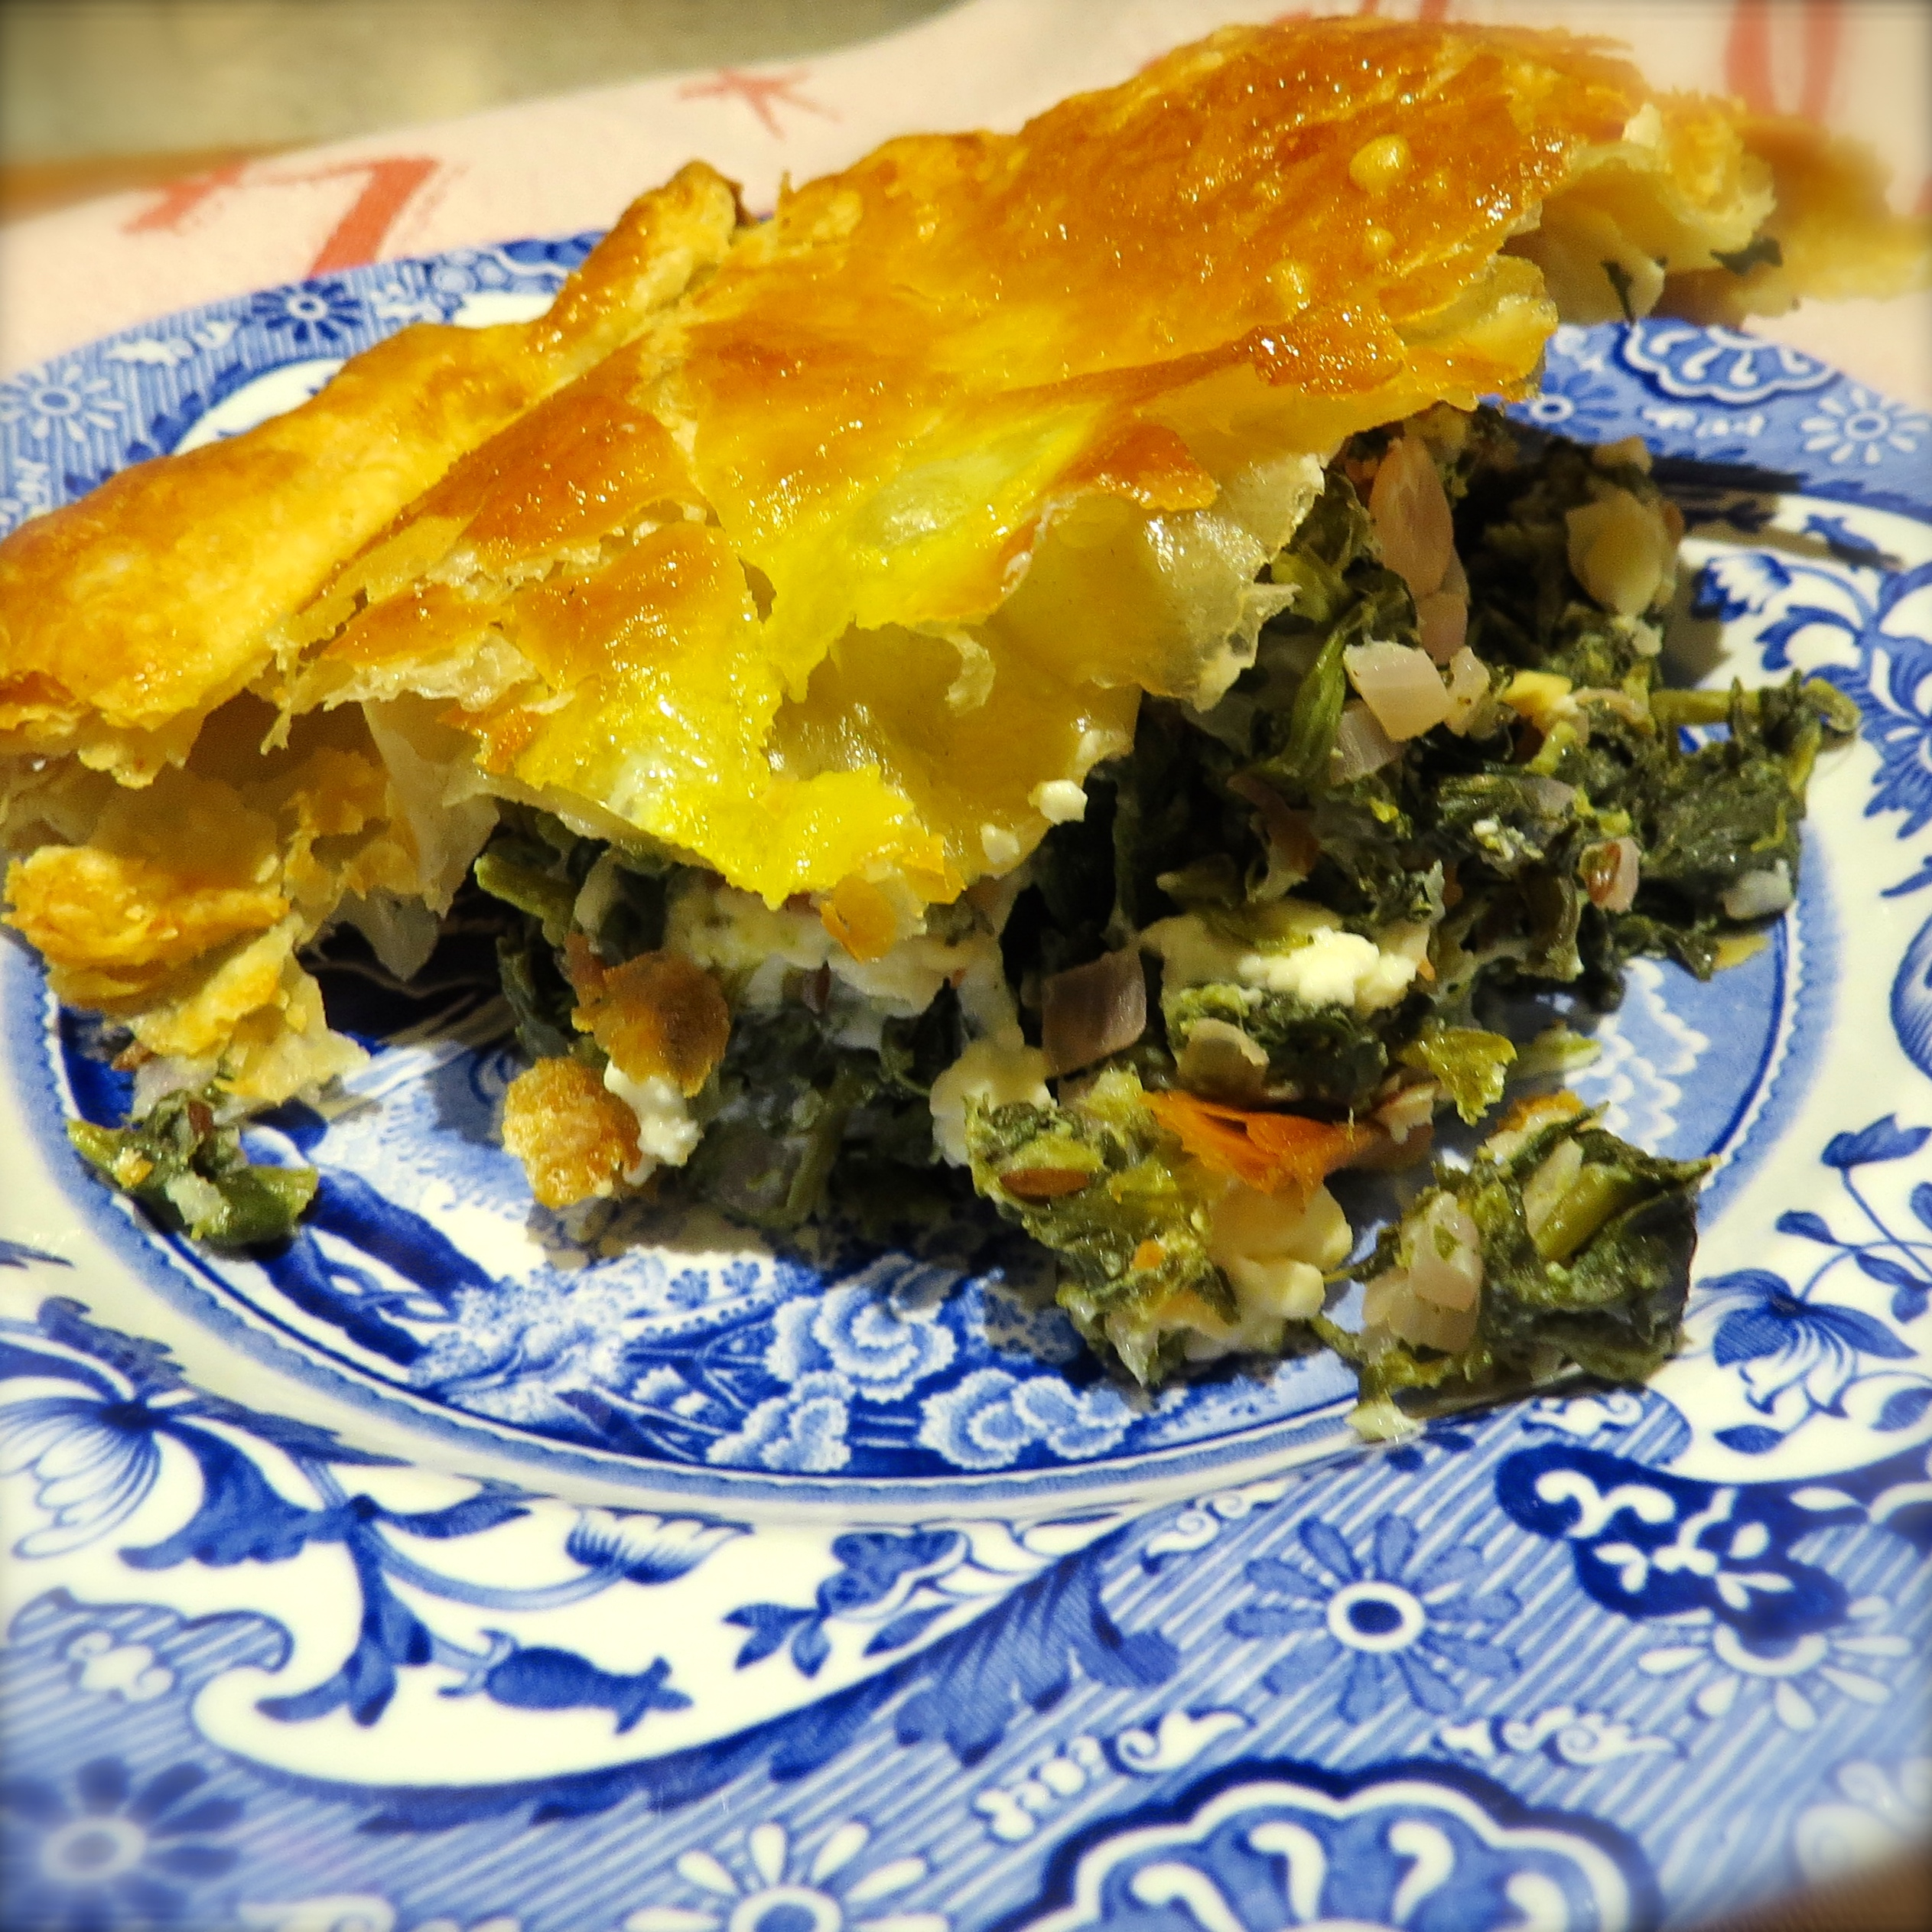 Corner Shop Spanakopita, one of my December Cottage Cooking Club choices from Hugh Fearnley-Whittingstall's River Cottage VEG cookbook.